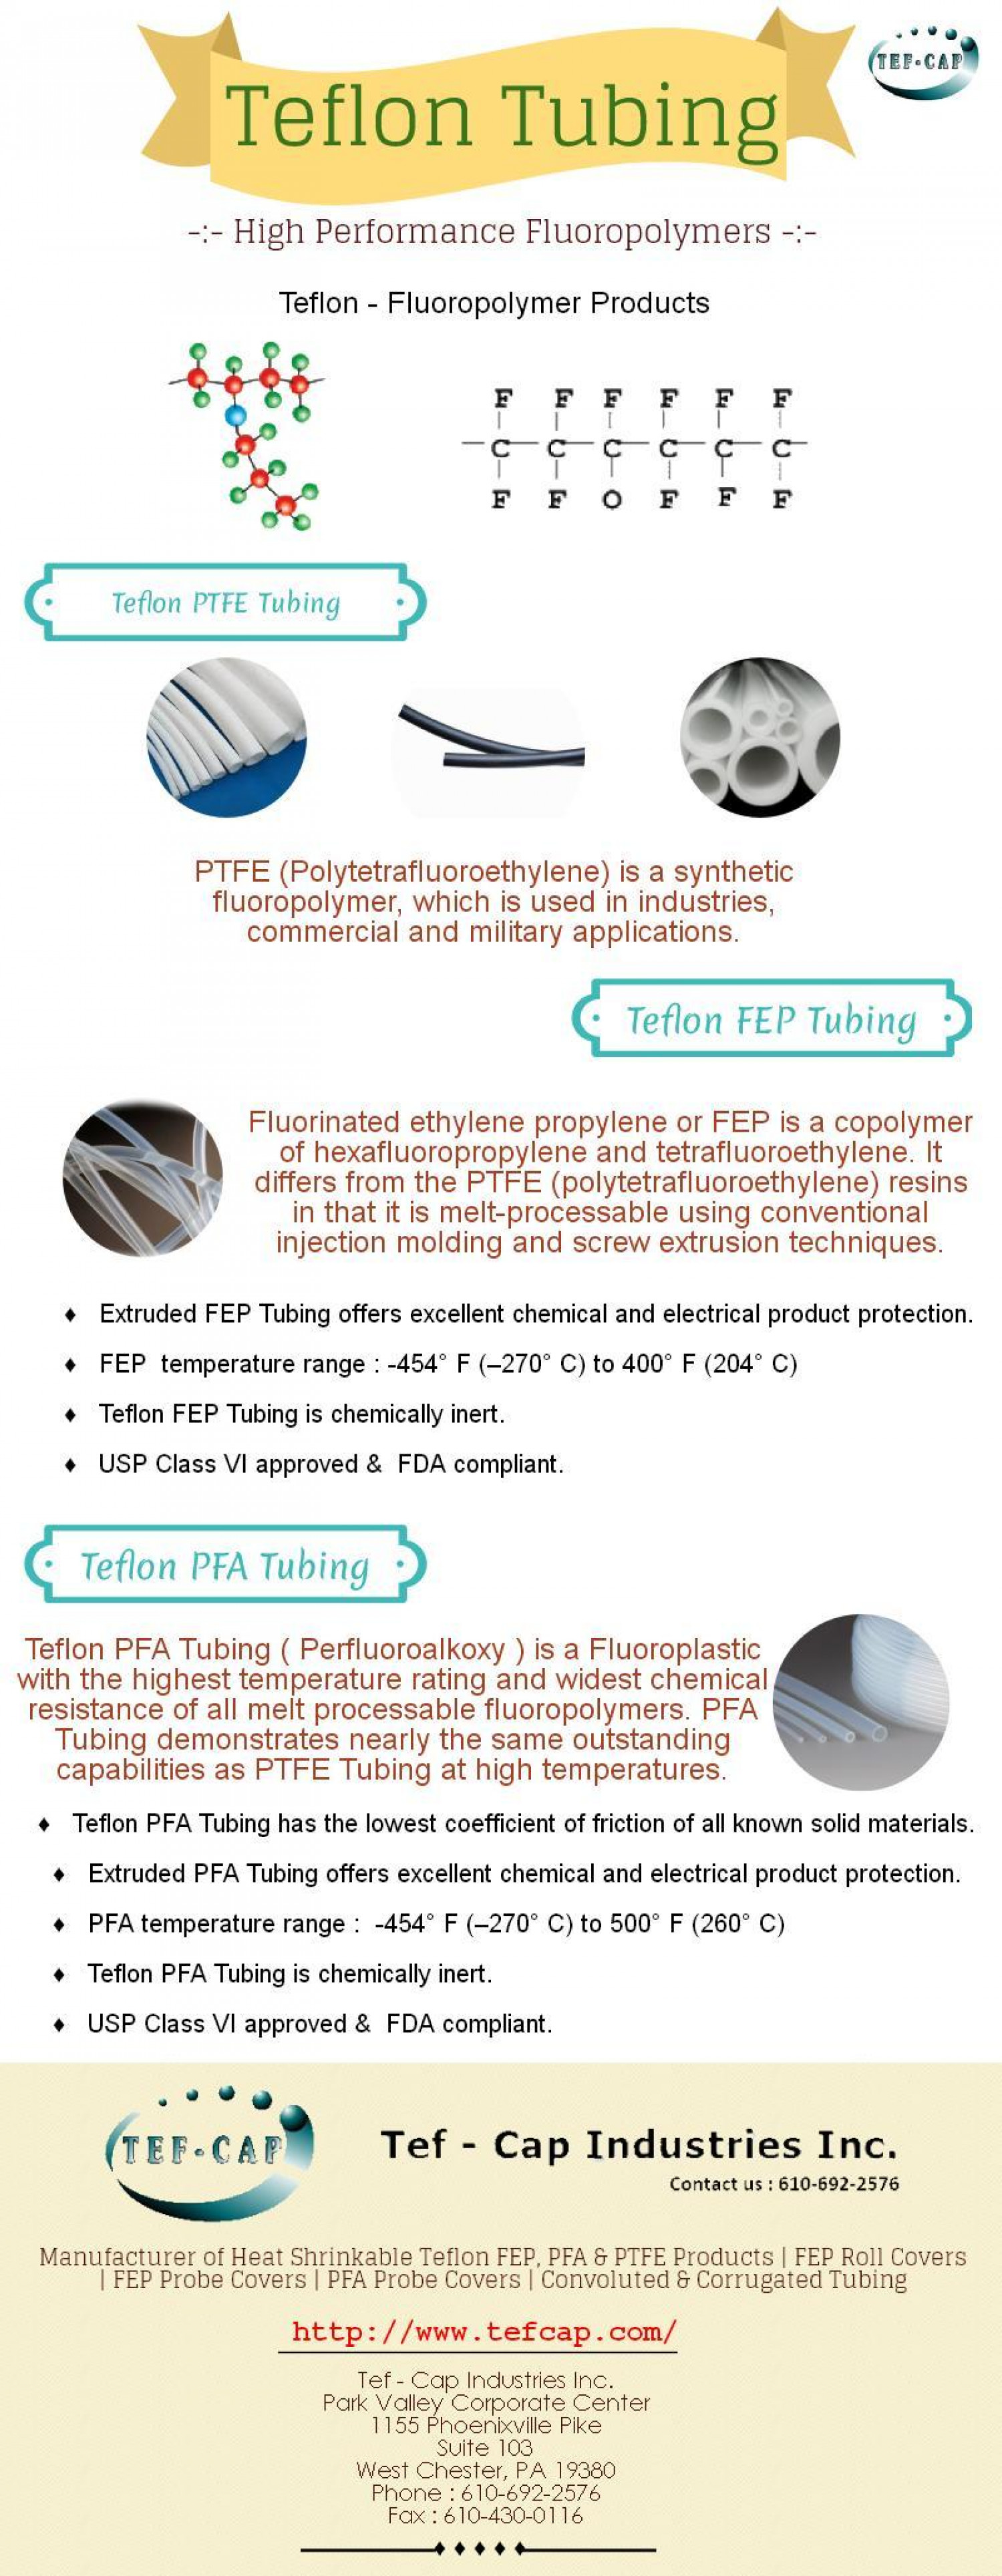 Teflon Tubing and Its Besic Types - Infographic   Visual ly